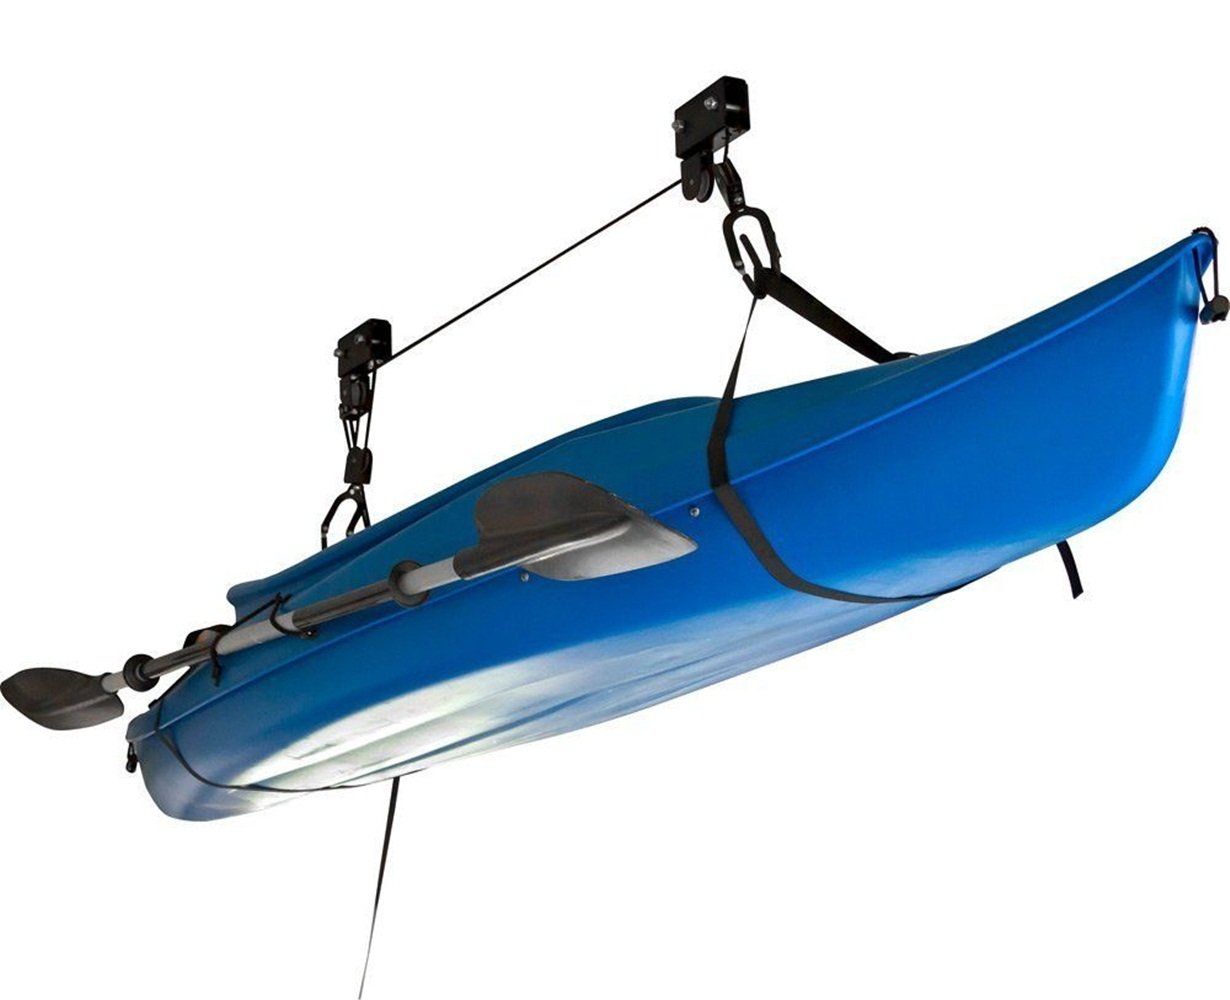 Clearwater Kayak Garage Mount Ceiling Hoist for Home, Cl105ka Canoe by Canoe (Image #1)